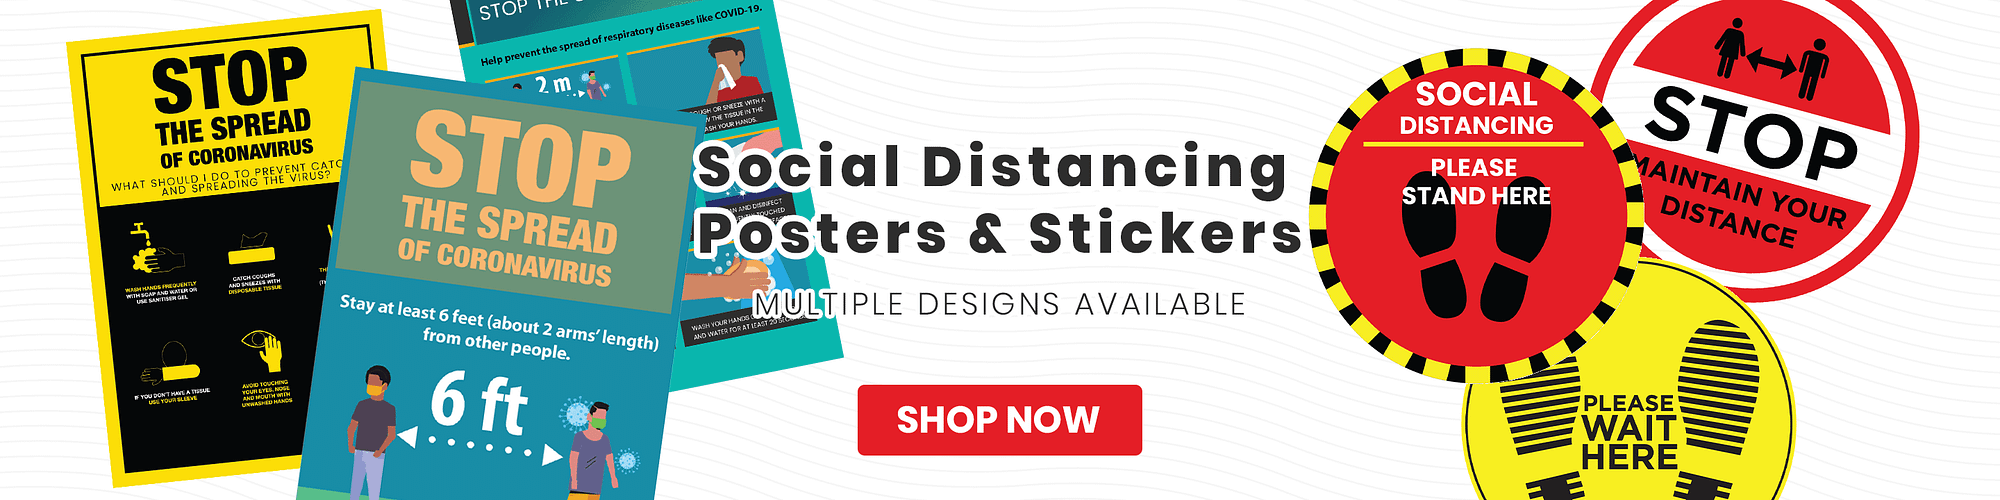 Social Distancing Posters & Stickers